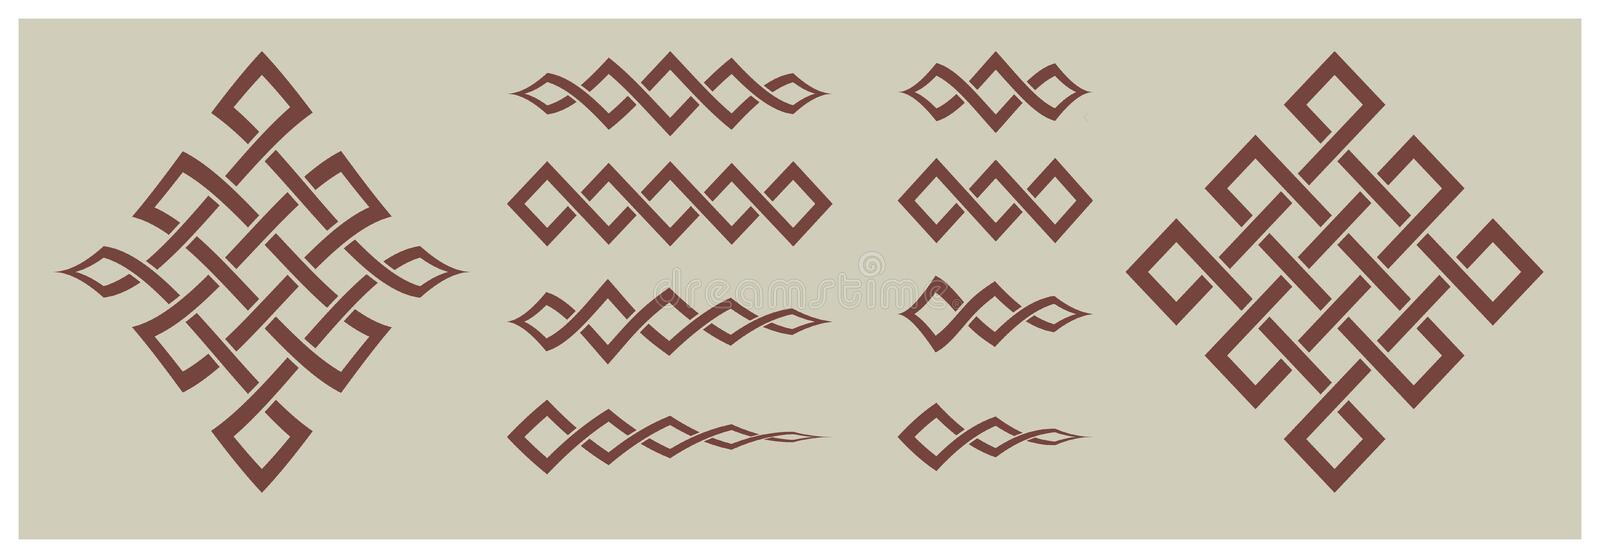 Decorative items and ornaments geometric shapes stock illustration